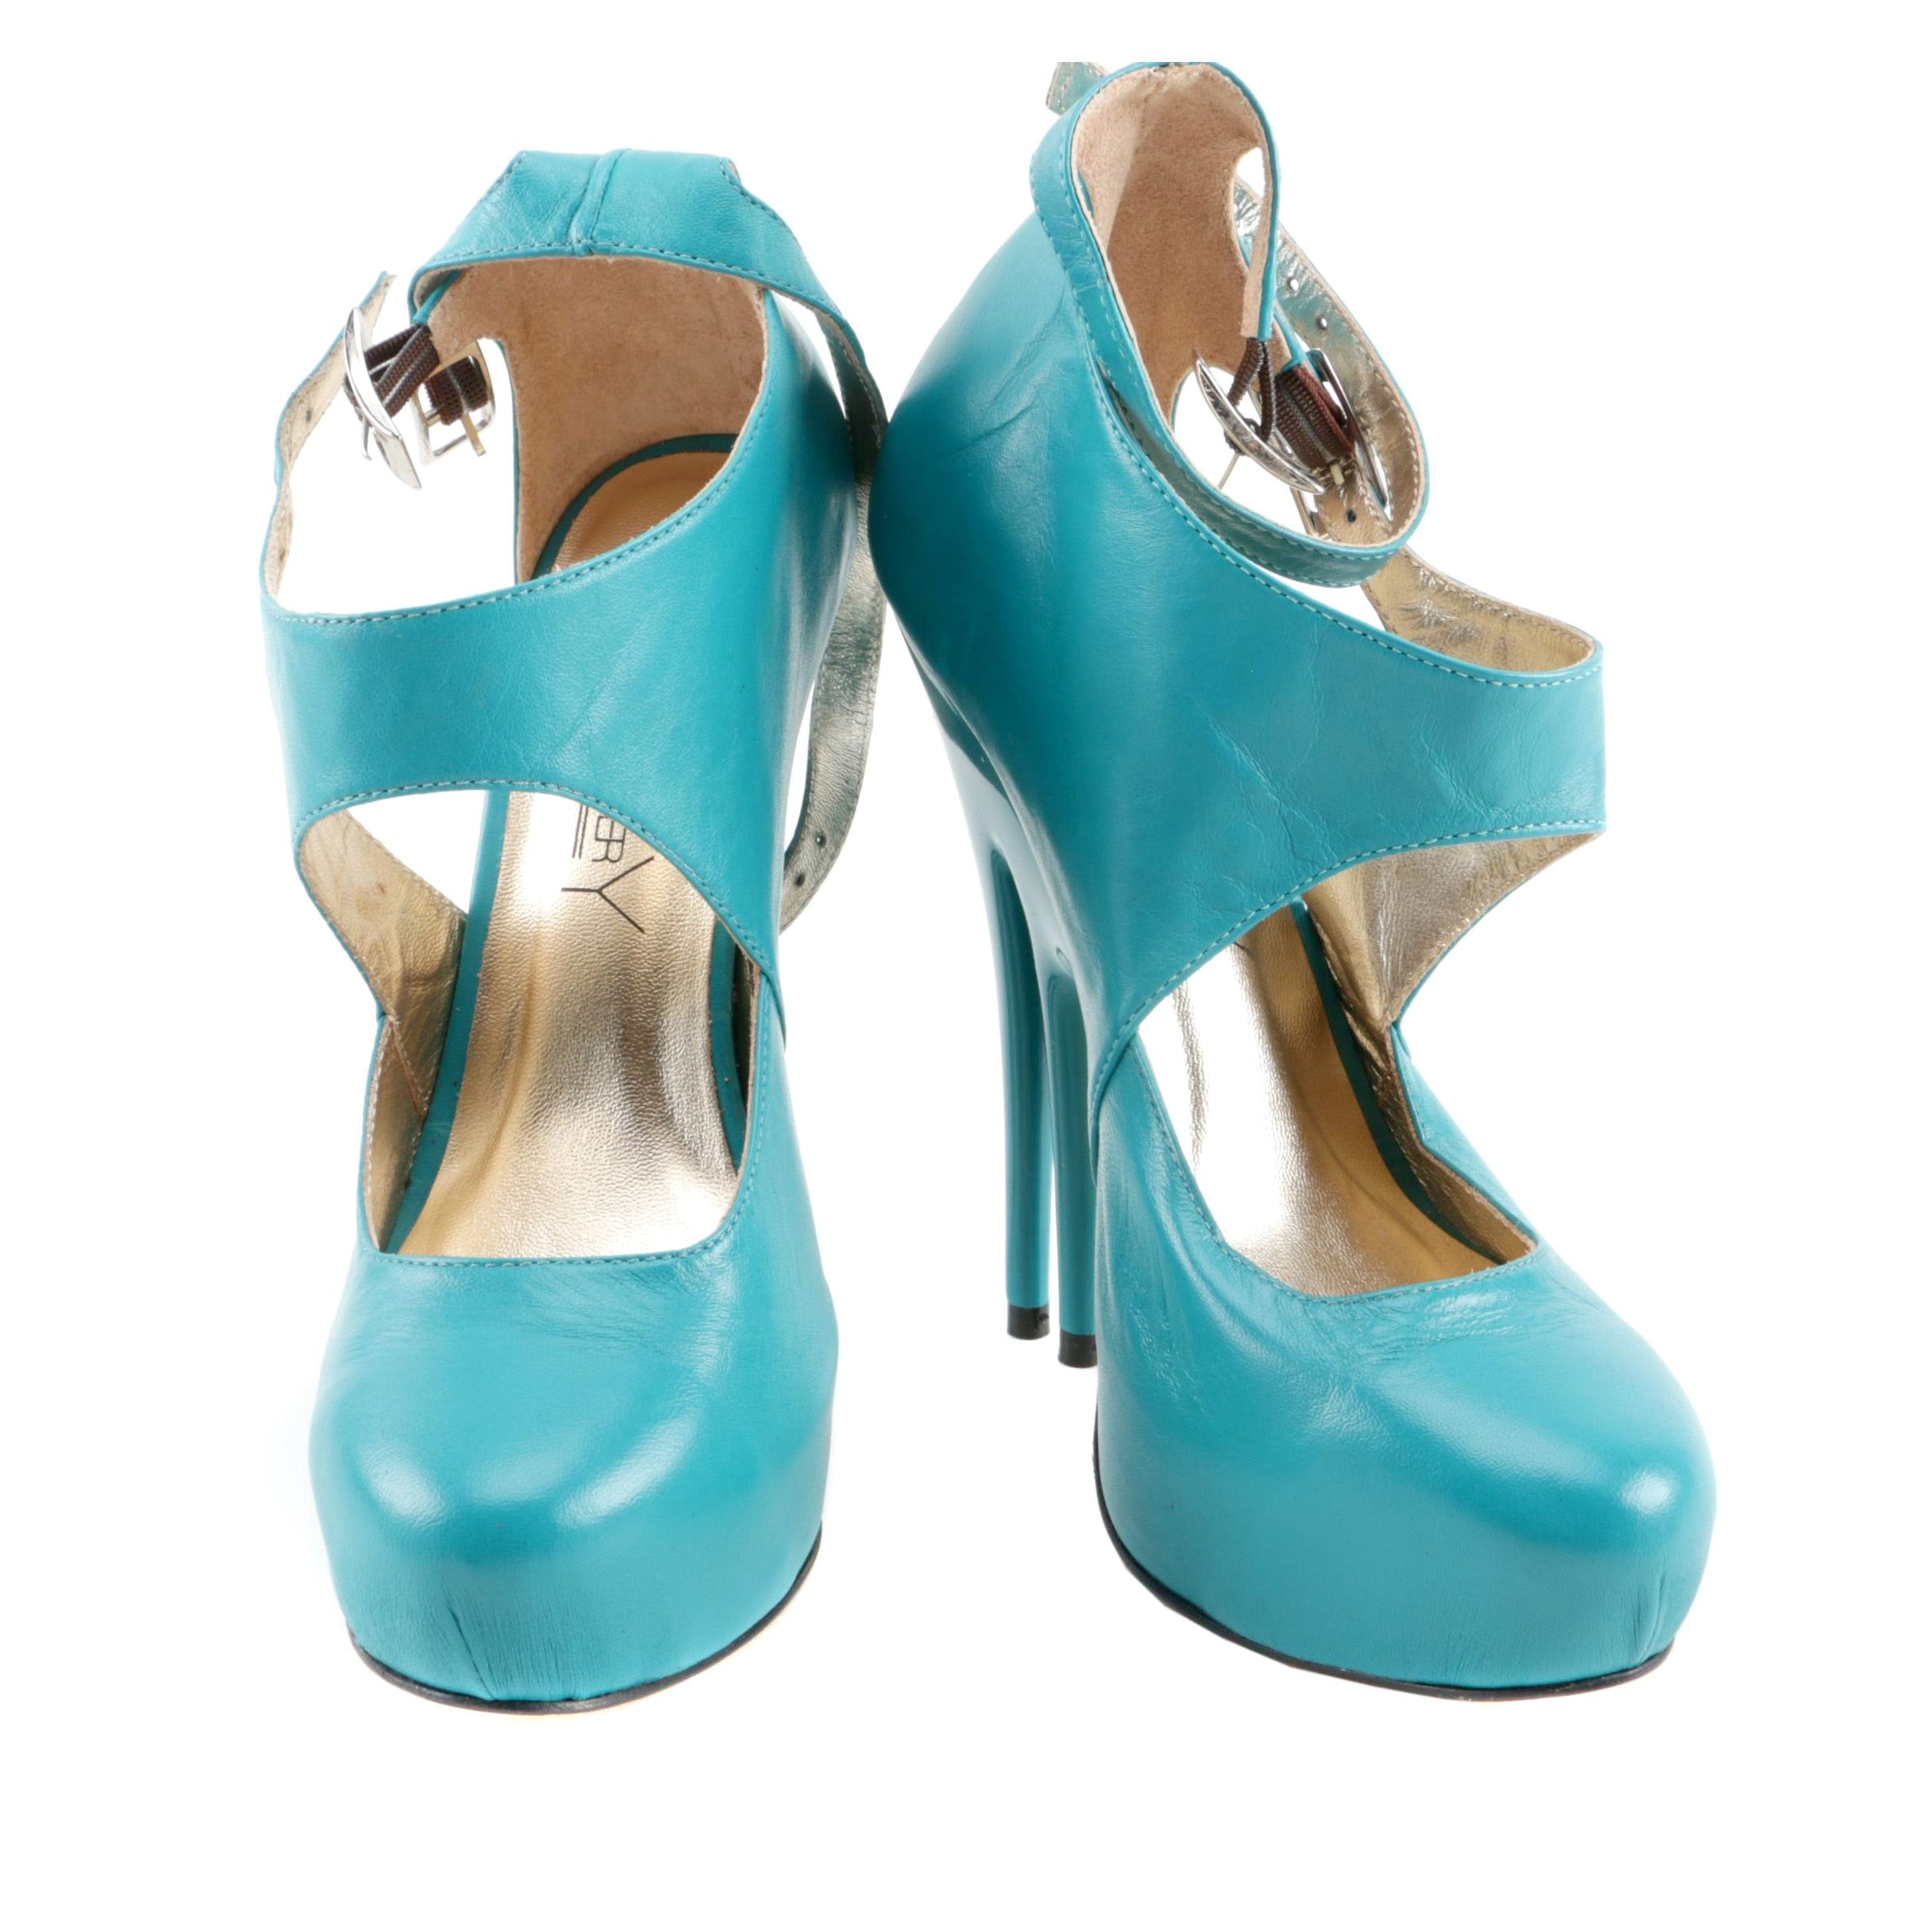 Christopher Coy Collection Prototype Heels in Aqua Leather